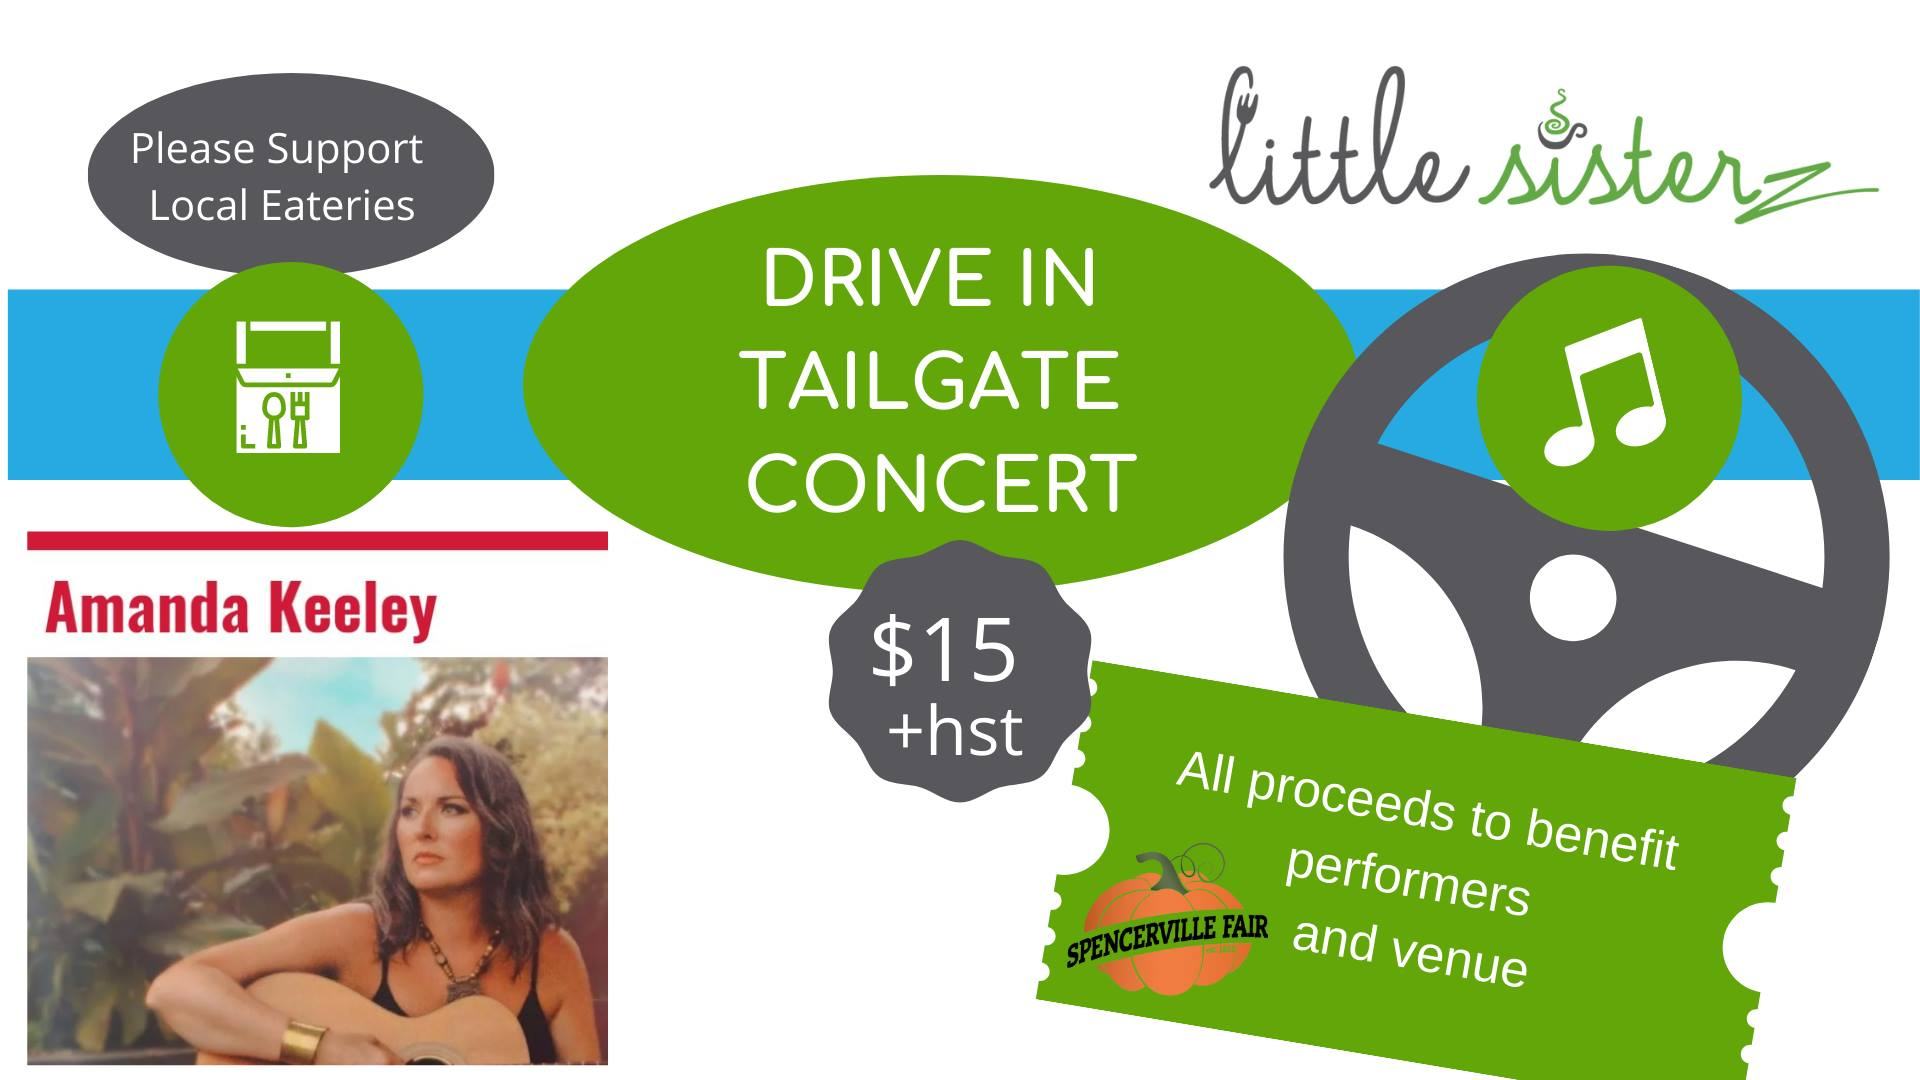 drive in tailgate concert $15+hst.